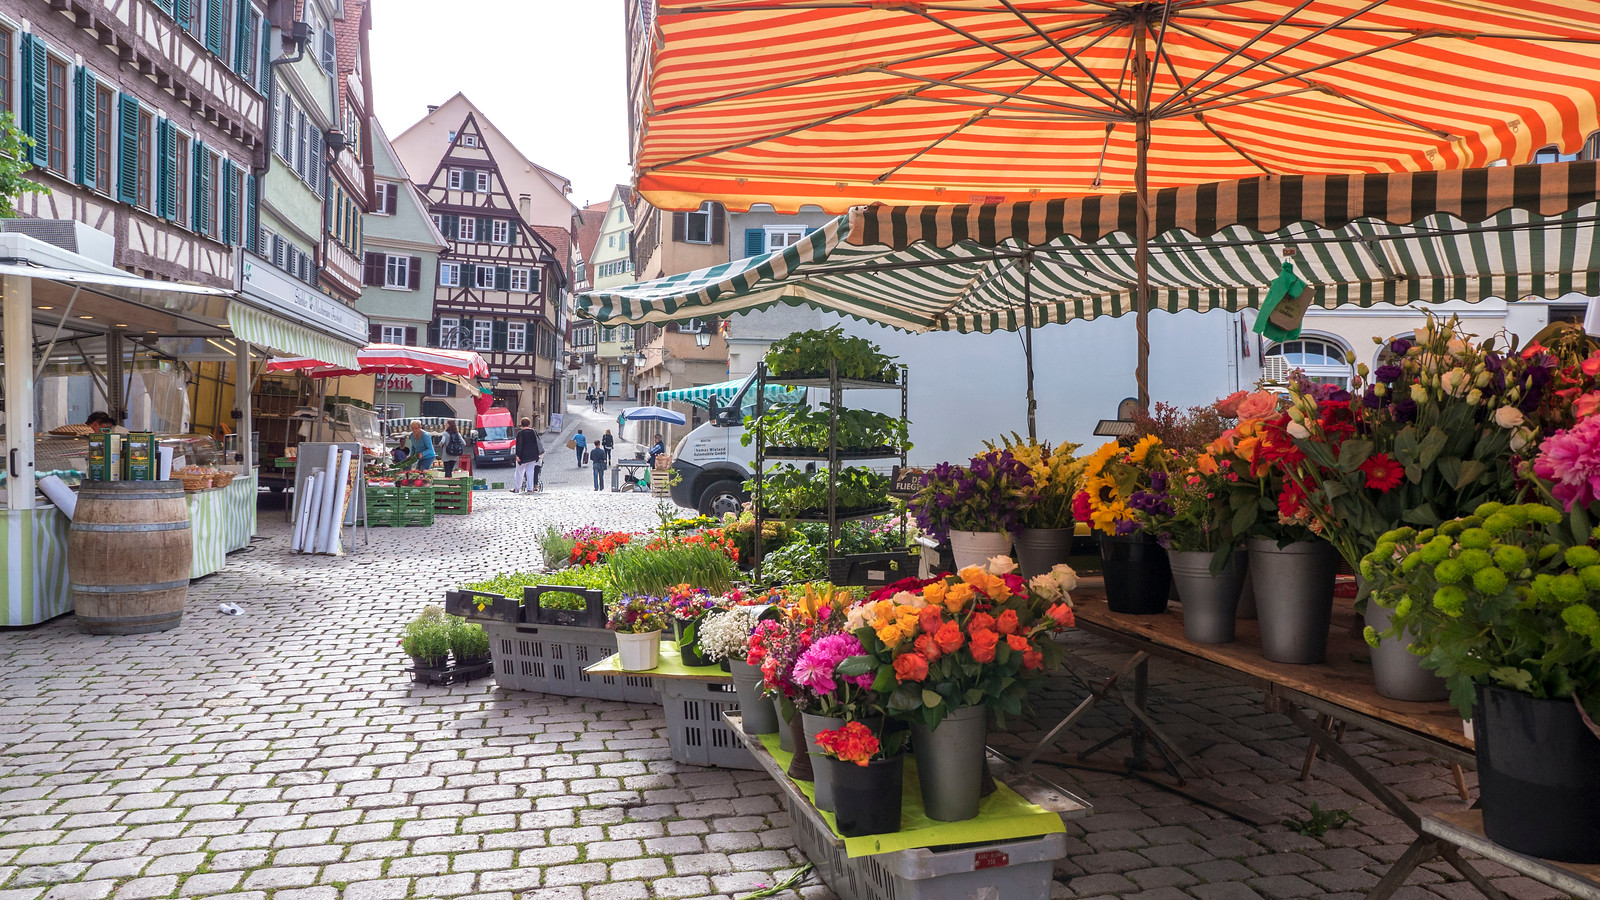 Farmer's market at Marktplatz. Things to do in Tubingen Germany.